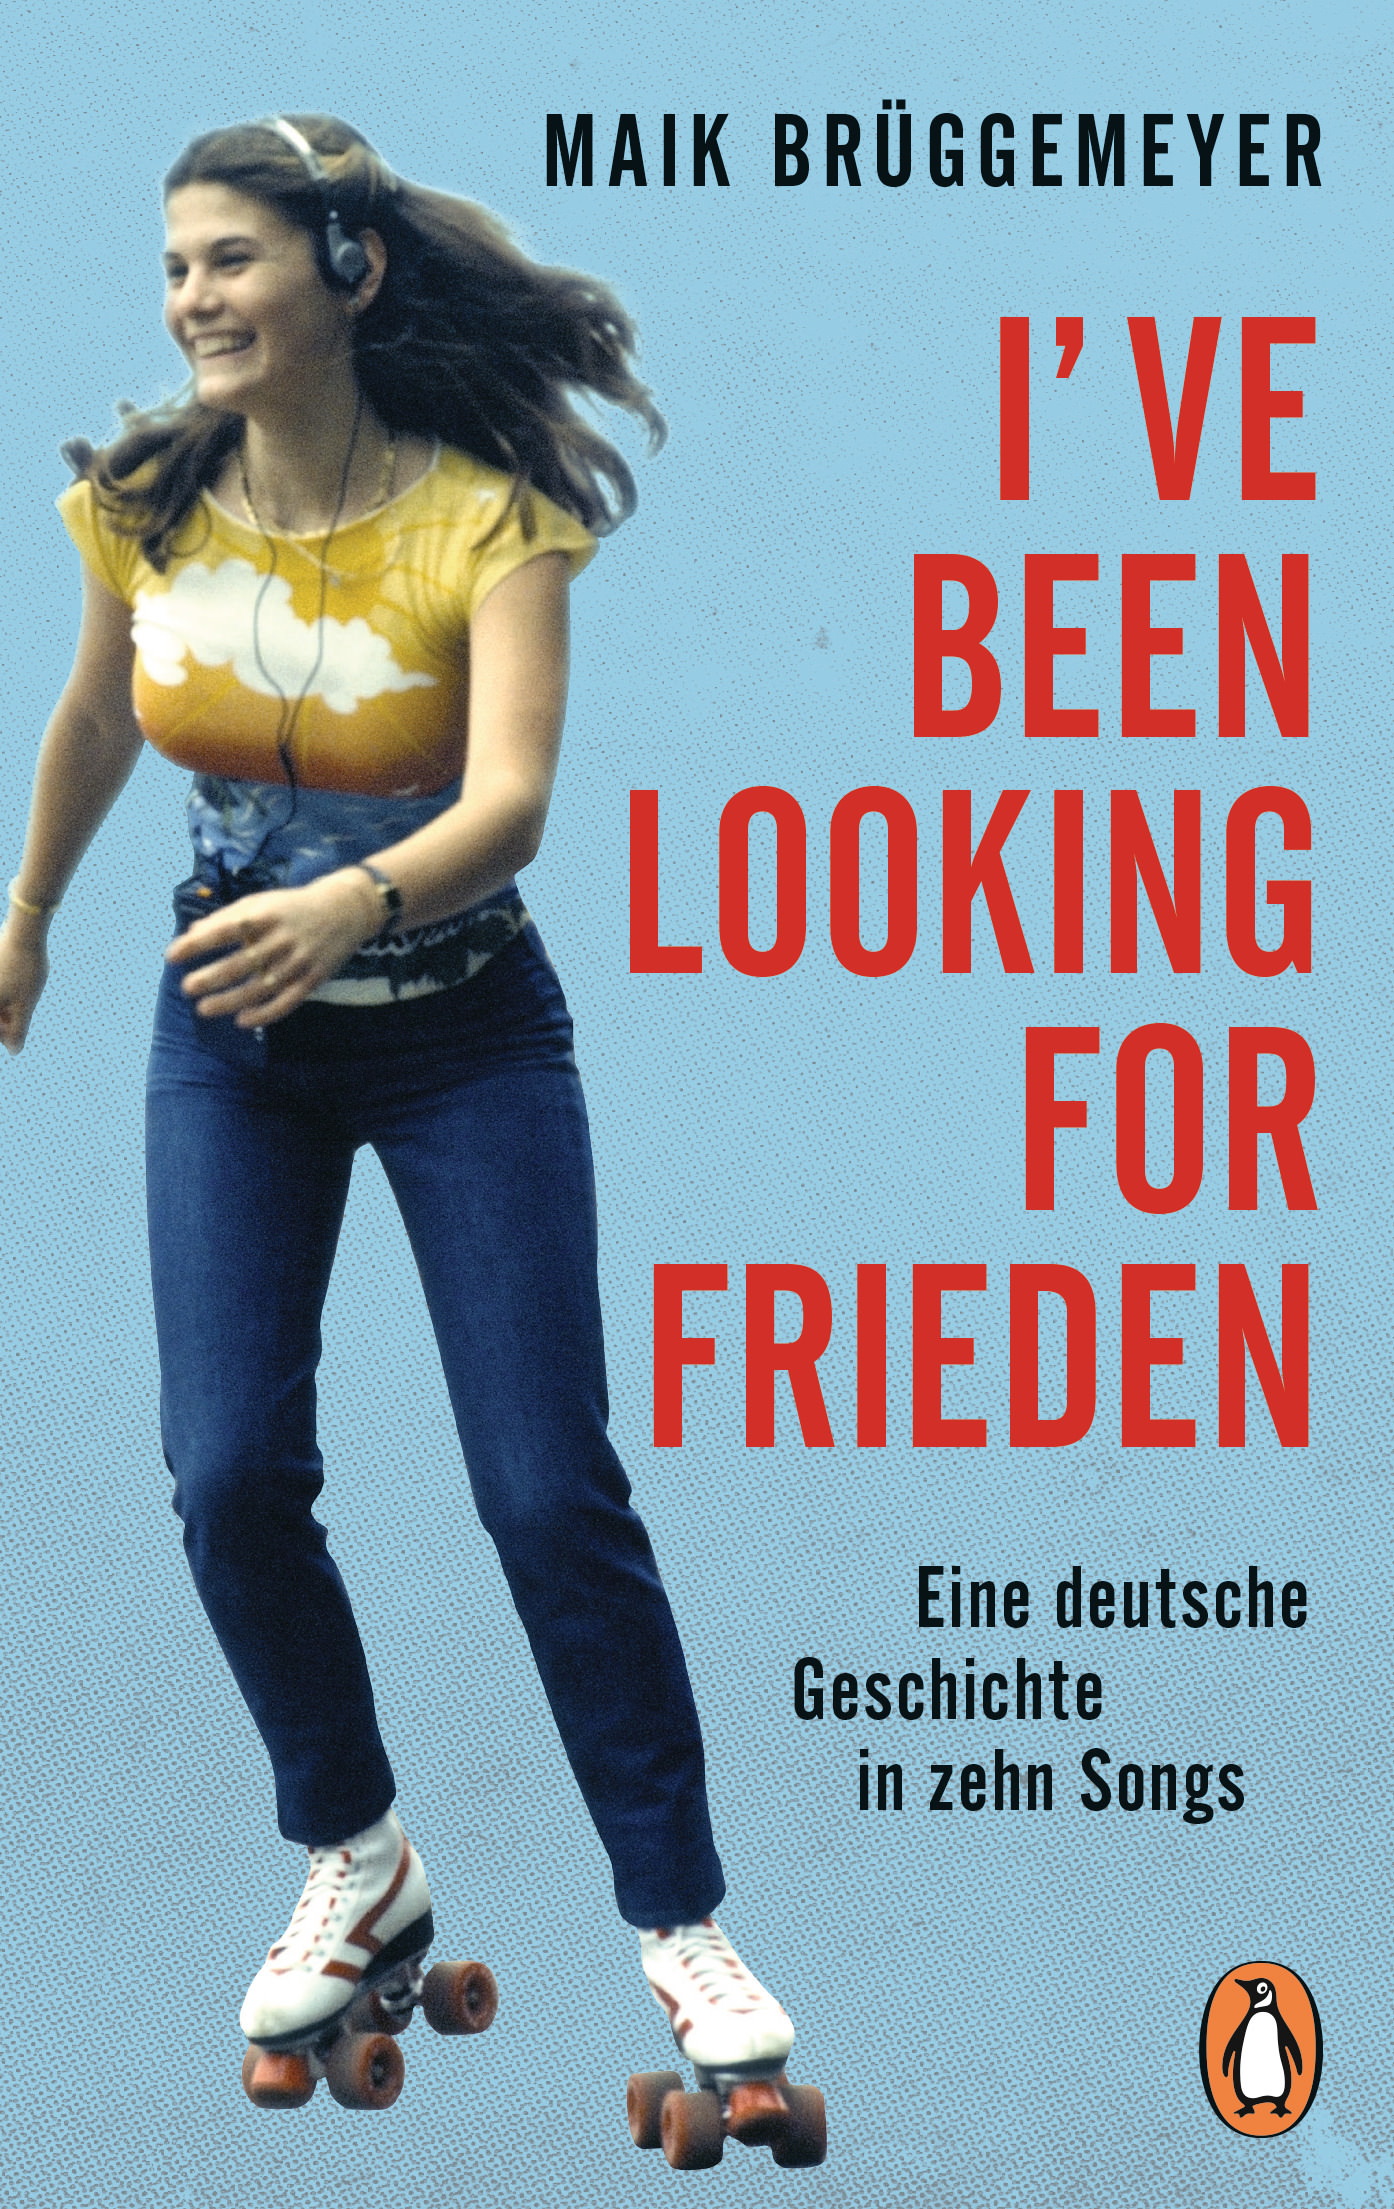 Buchcover: Maik Brüggemeyer: I've been looking for Frieden